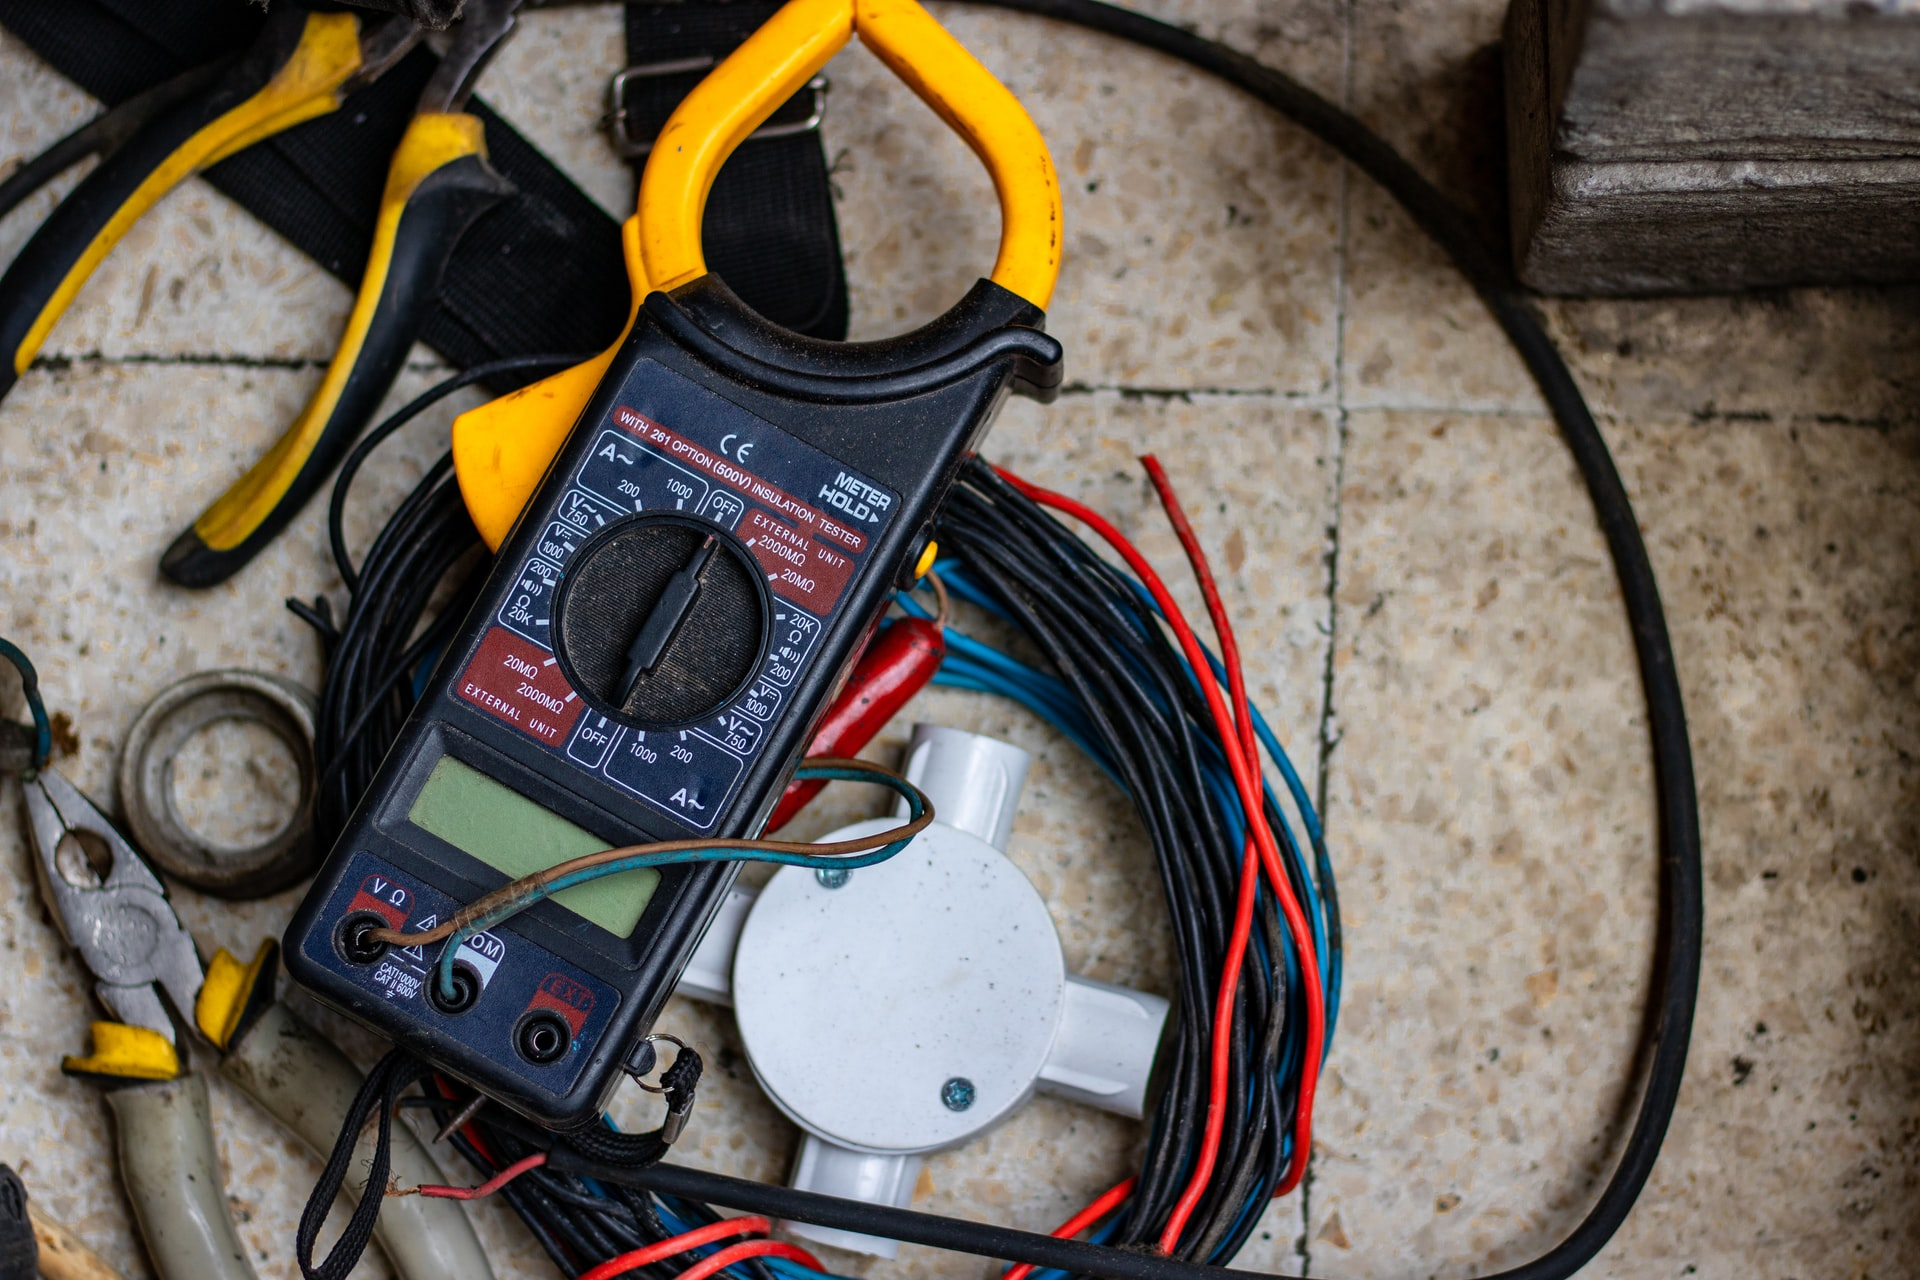 Electricians Insurance: What Coverage You Need and What It Should Cost